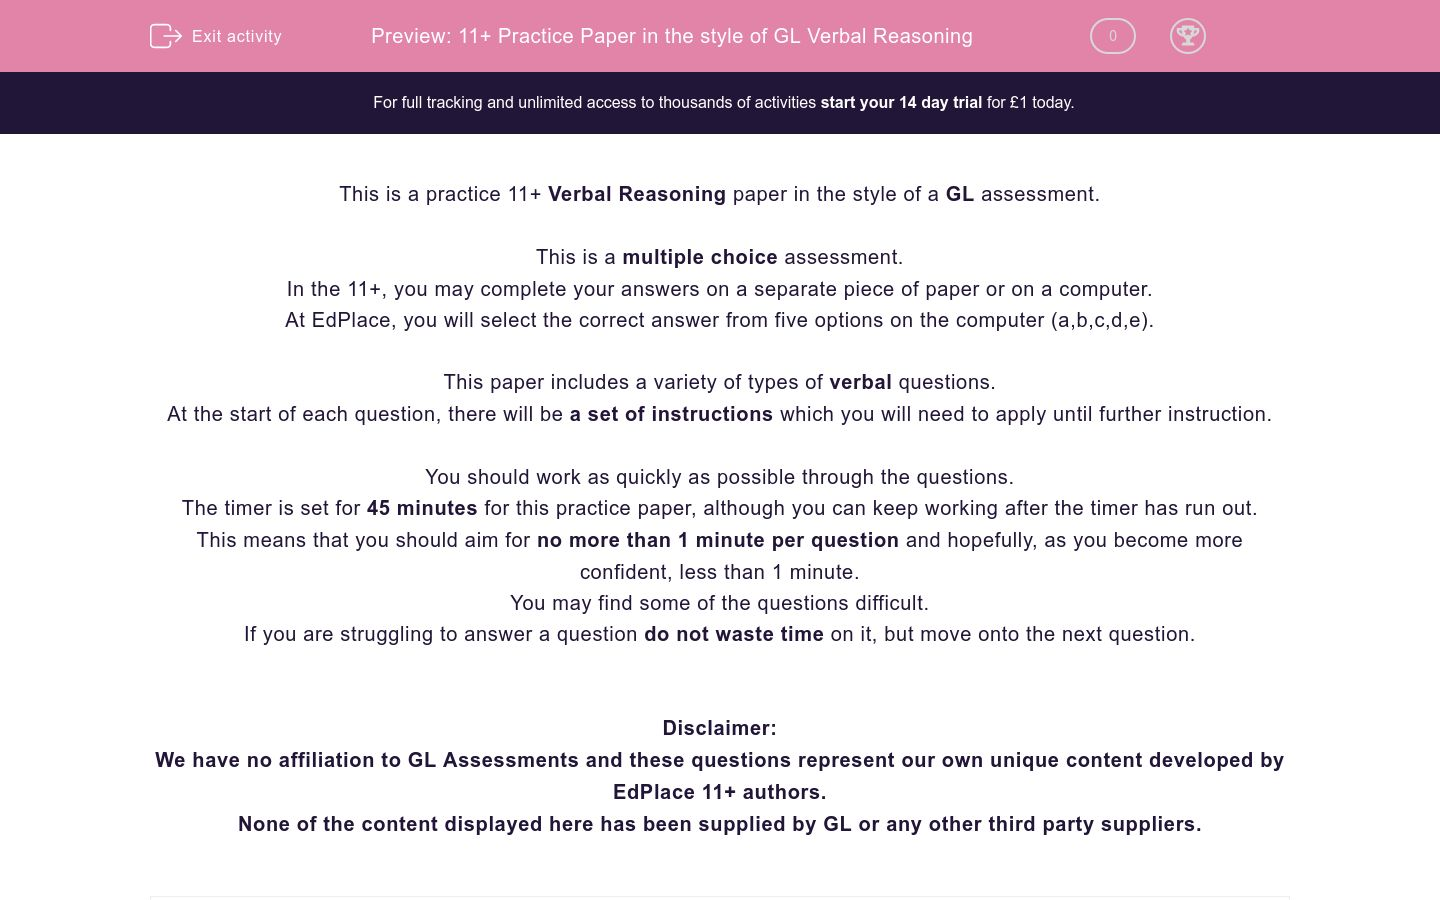 '11+ Practice Paper in the style of GL Verbal Reasoning' worksheet